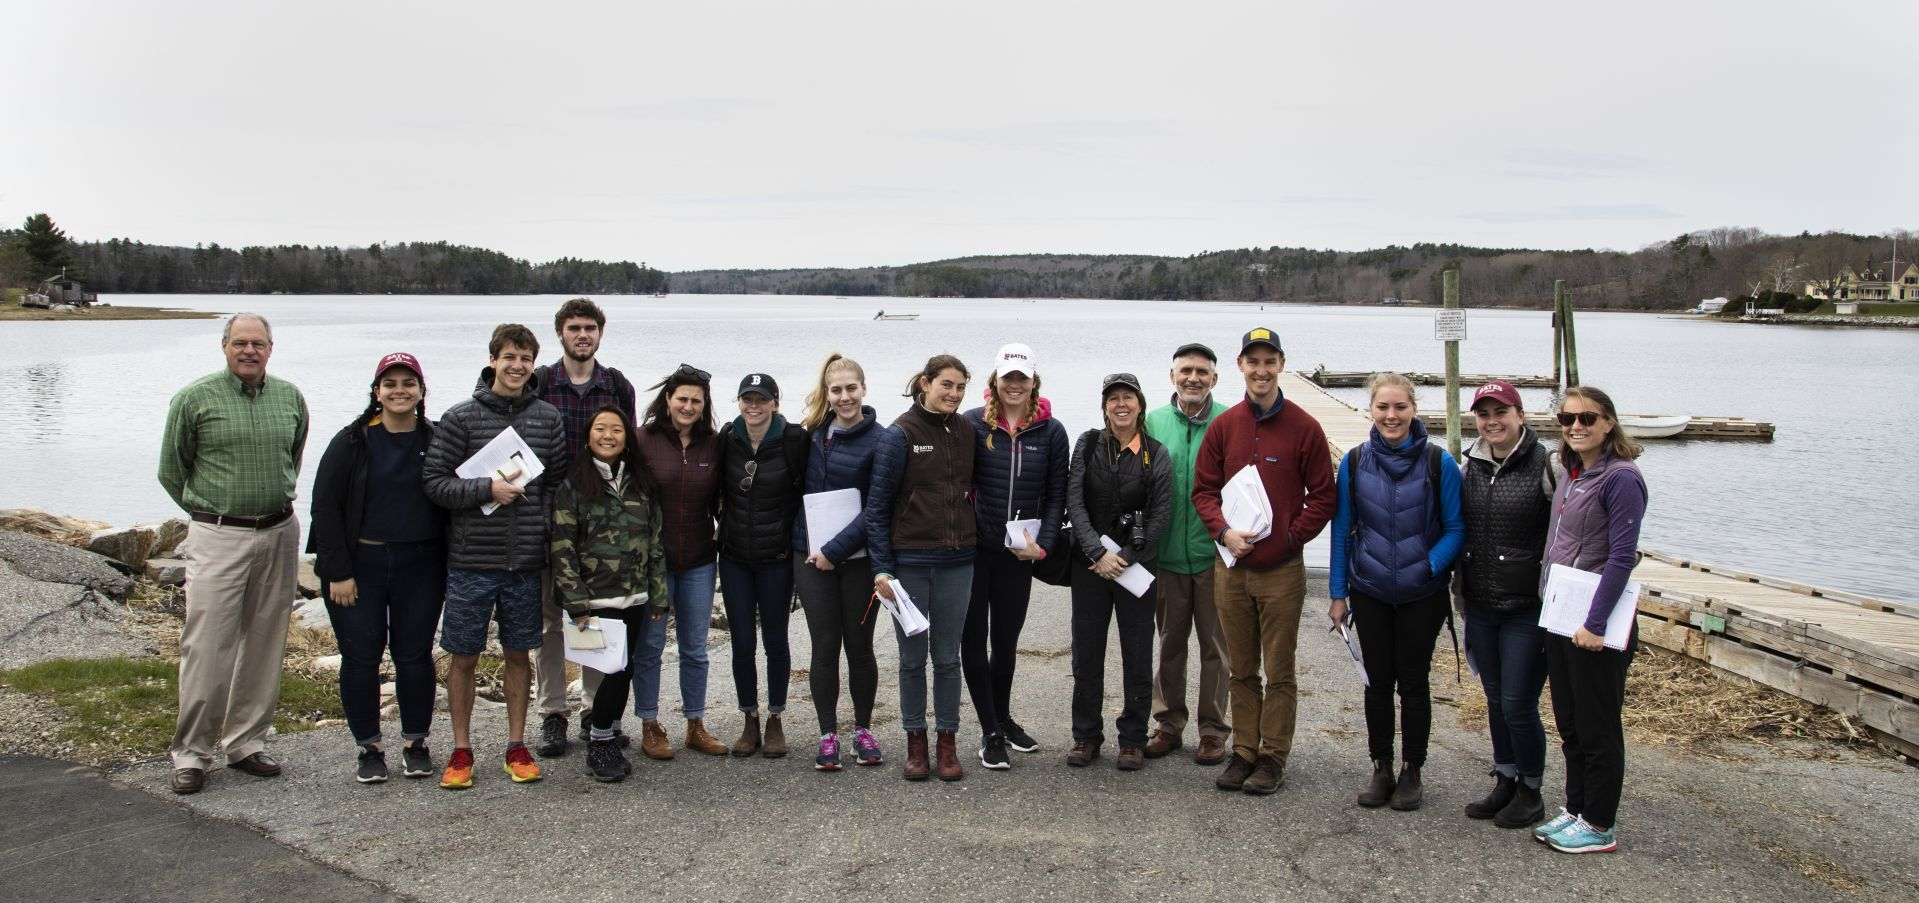 Bates students visit Damariscotta to meet with the town manager and talk about sea level rise and climate change impacts while participating in Lynne Lewis and Francis Eanes short term course 'In Search of Higher Ground' on May 1, 2019. In Search of Higher Ground: Sea Level Rise, Coastal Flooding and the Future of the Eastern Seaboard Climate change, increased storm frequency and intensity, and sea level rise have created an urgent need for adaptation planning for many communities along the U.S. eastern seaboard. In this course students examine adaptation strategies and vulnerability assessments with a goal of understanding social and economic vulnerability and the complexities of coastal retreat. Utilizing climate adaptation planning tools, mapping technology, and on the ground observation, students examine adaptation strategies including managed retreat, buyouts, living shorelines, and and green infrastructure. Students consider the current and future role of FEMA's national flood insurance program as a major mechanism for incentivizing resilient or reckless coastal development. Based in experiential learning, students engage in discussions with experts, practitioners, and residents in highly vulnerable coastal areas in Maine, as well a ten-day trip to coastal communities in Virginia and North Carolina. Recommended background: ECON 250 or other statistics course. Prerequisite(s): ECON 101 or 222, or ENVR 209. New course beginning Short Term 2019. 1.000 Credit hours